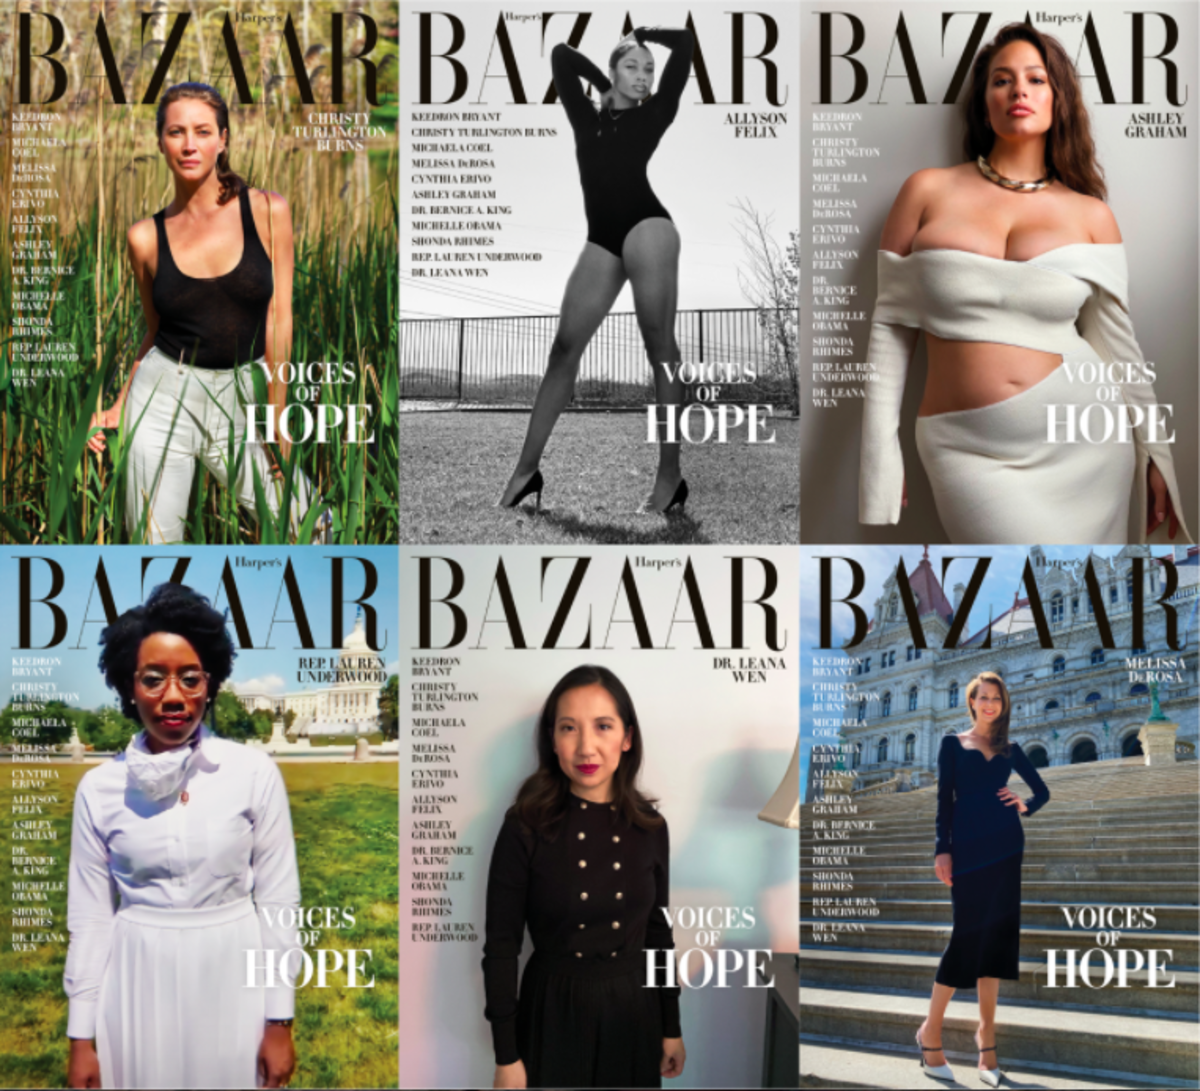 harpers bazaar voices of hope